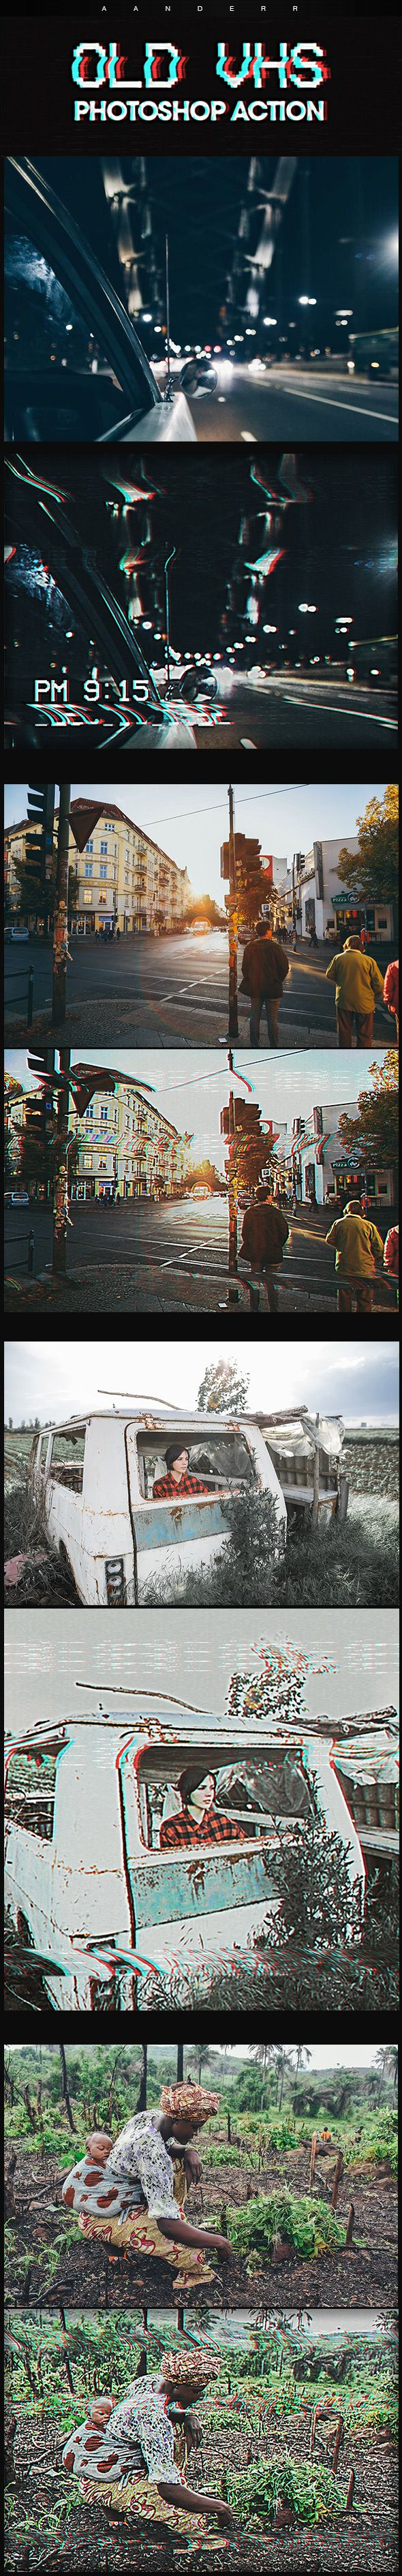 Old VHS Photoshop Action  #vhs #old • Download ➝ https://graphicriver.net/item/old-vhs-photoshop-action/18381927?ref=pxcr